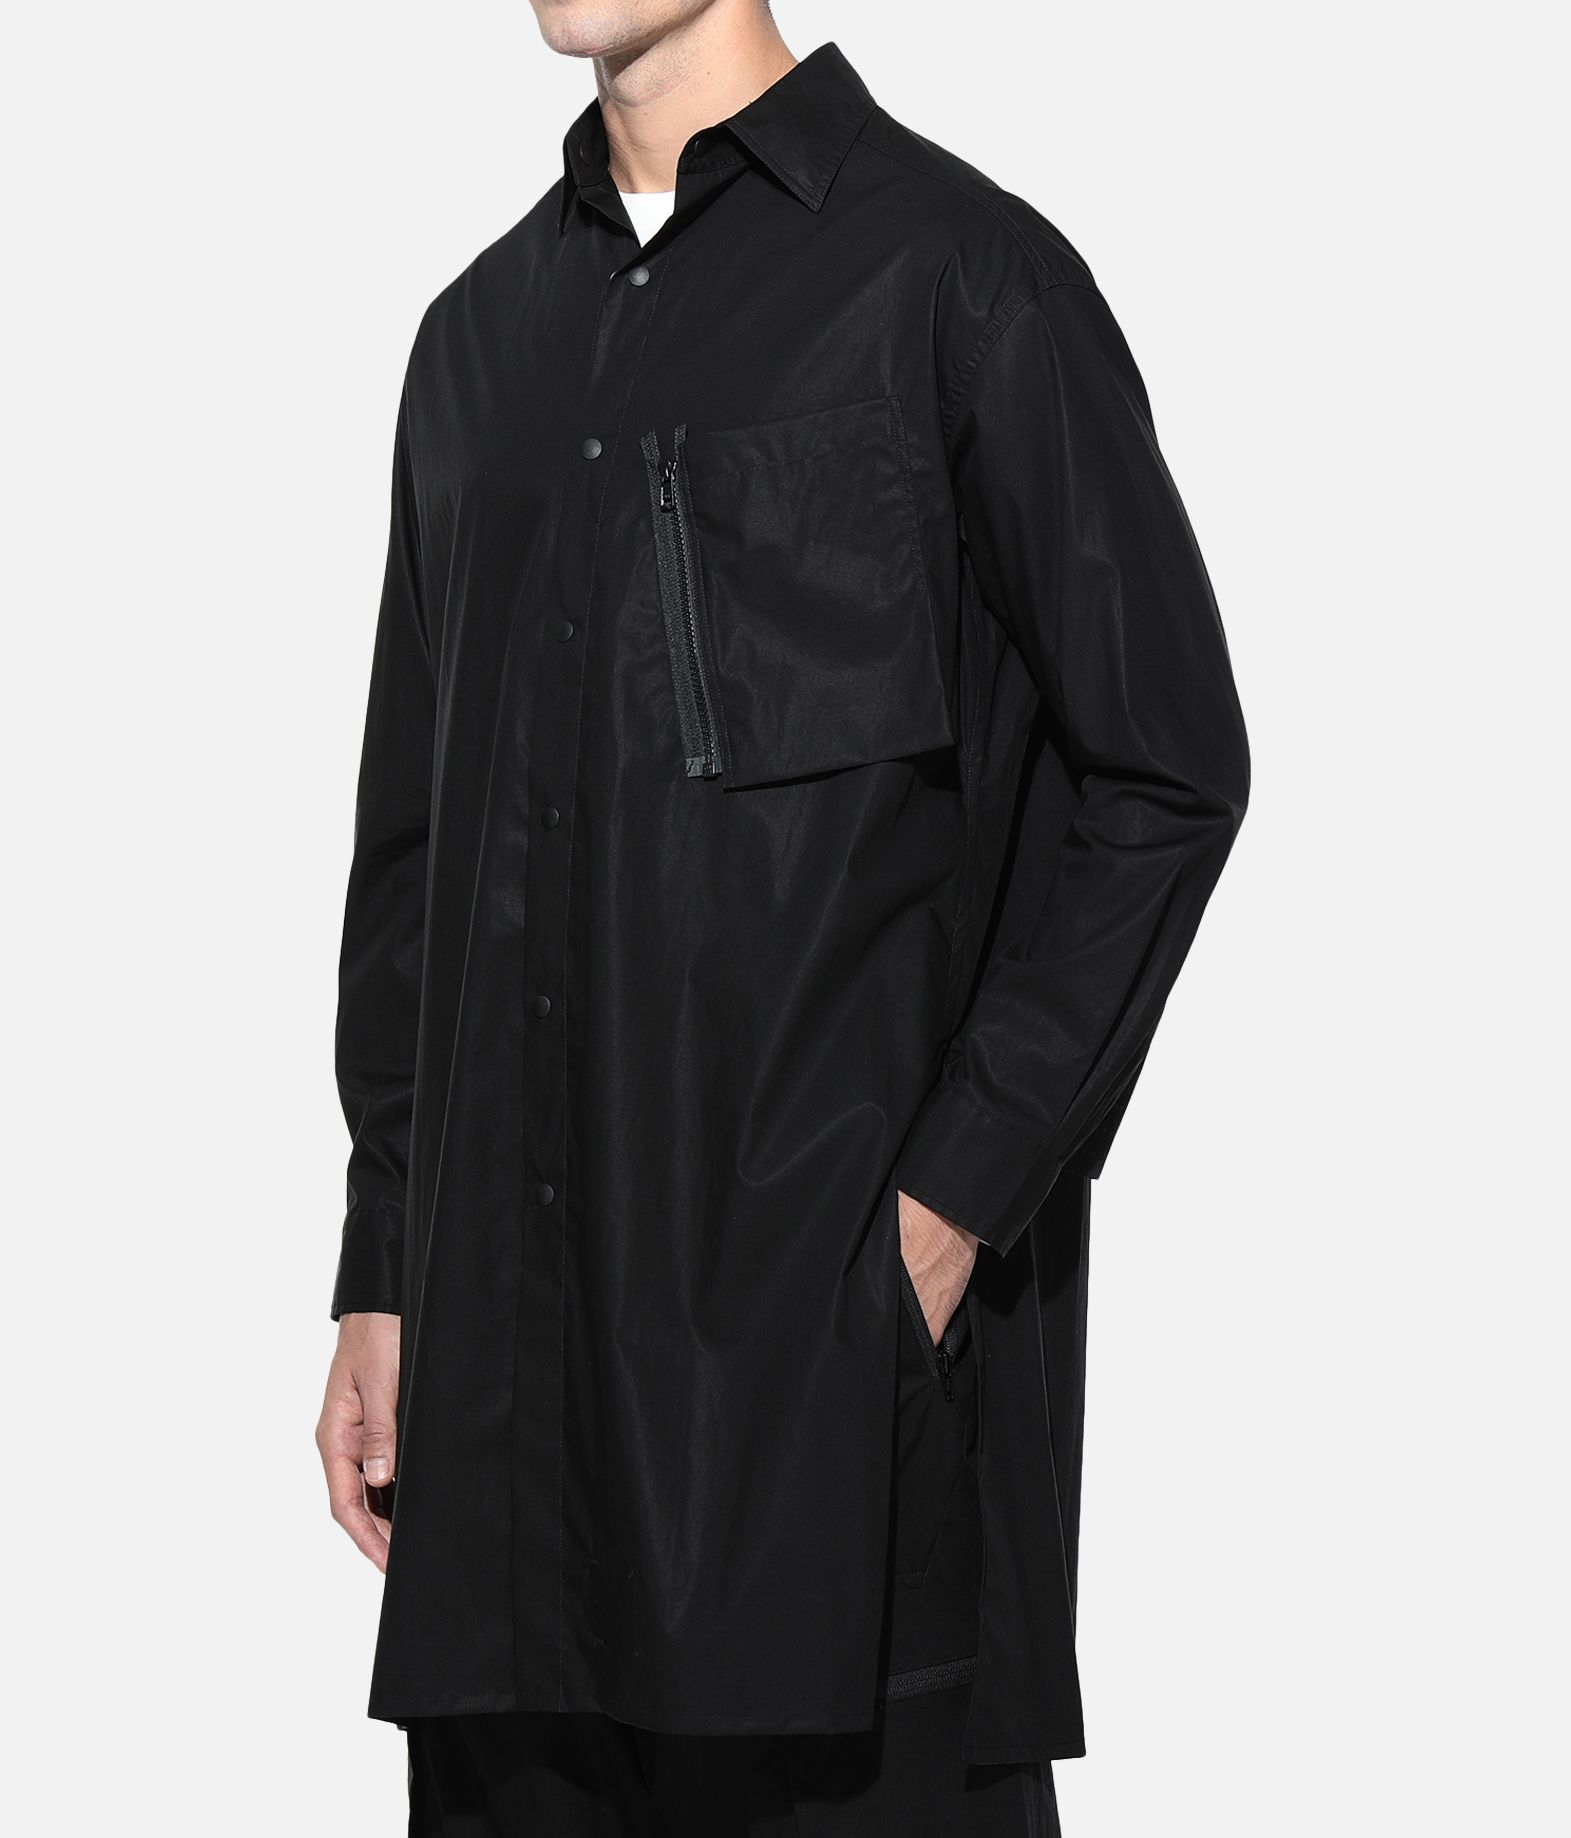 Y-3 Y-3 Tech Long Shirt Long sleeve shirt Man e